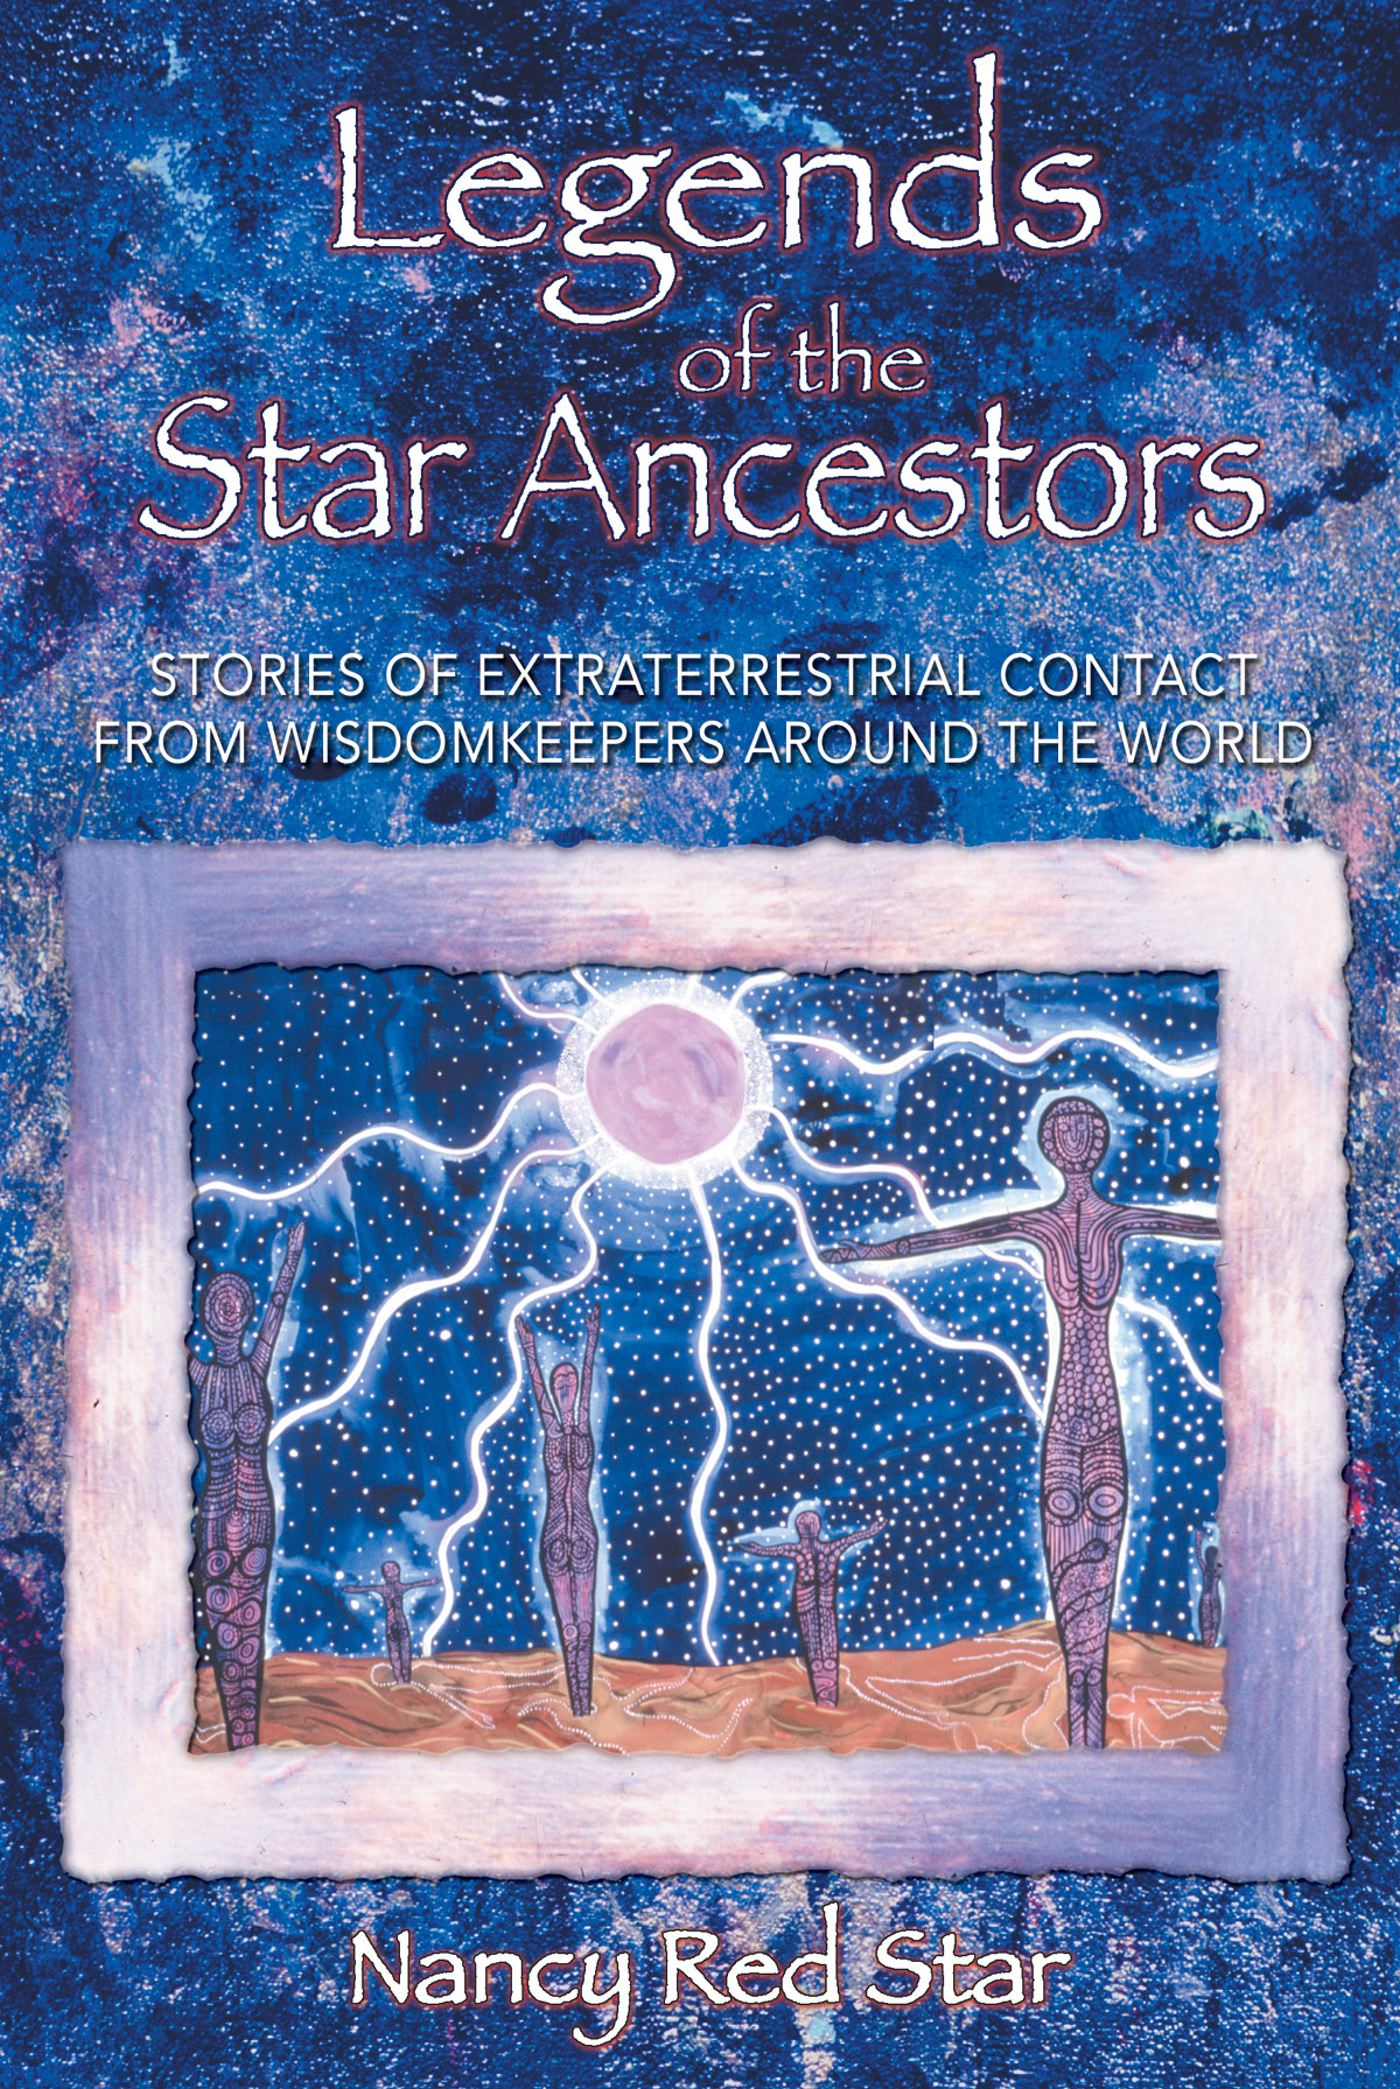 Legends-of-the-star-ancestors-9781879181793_hr